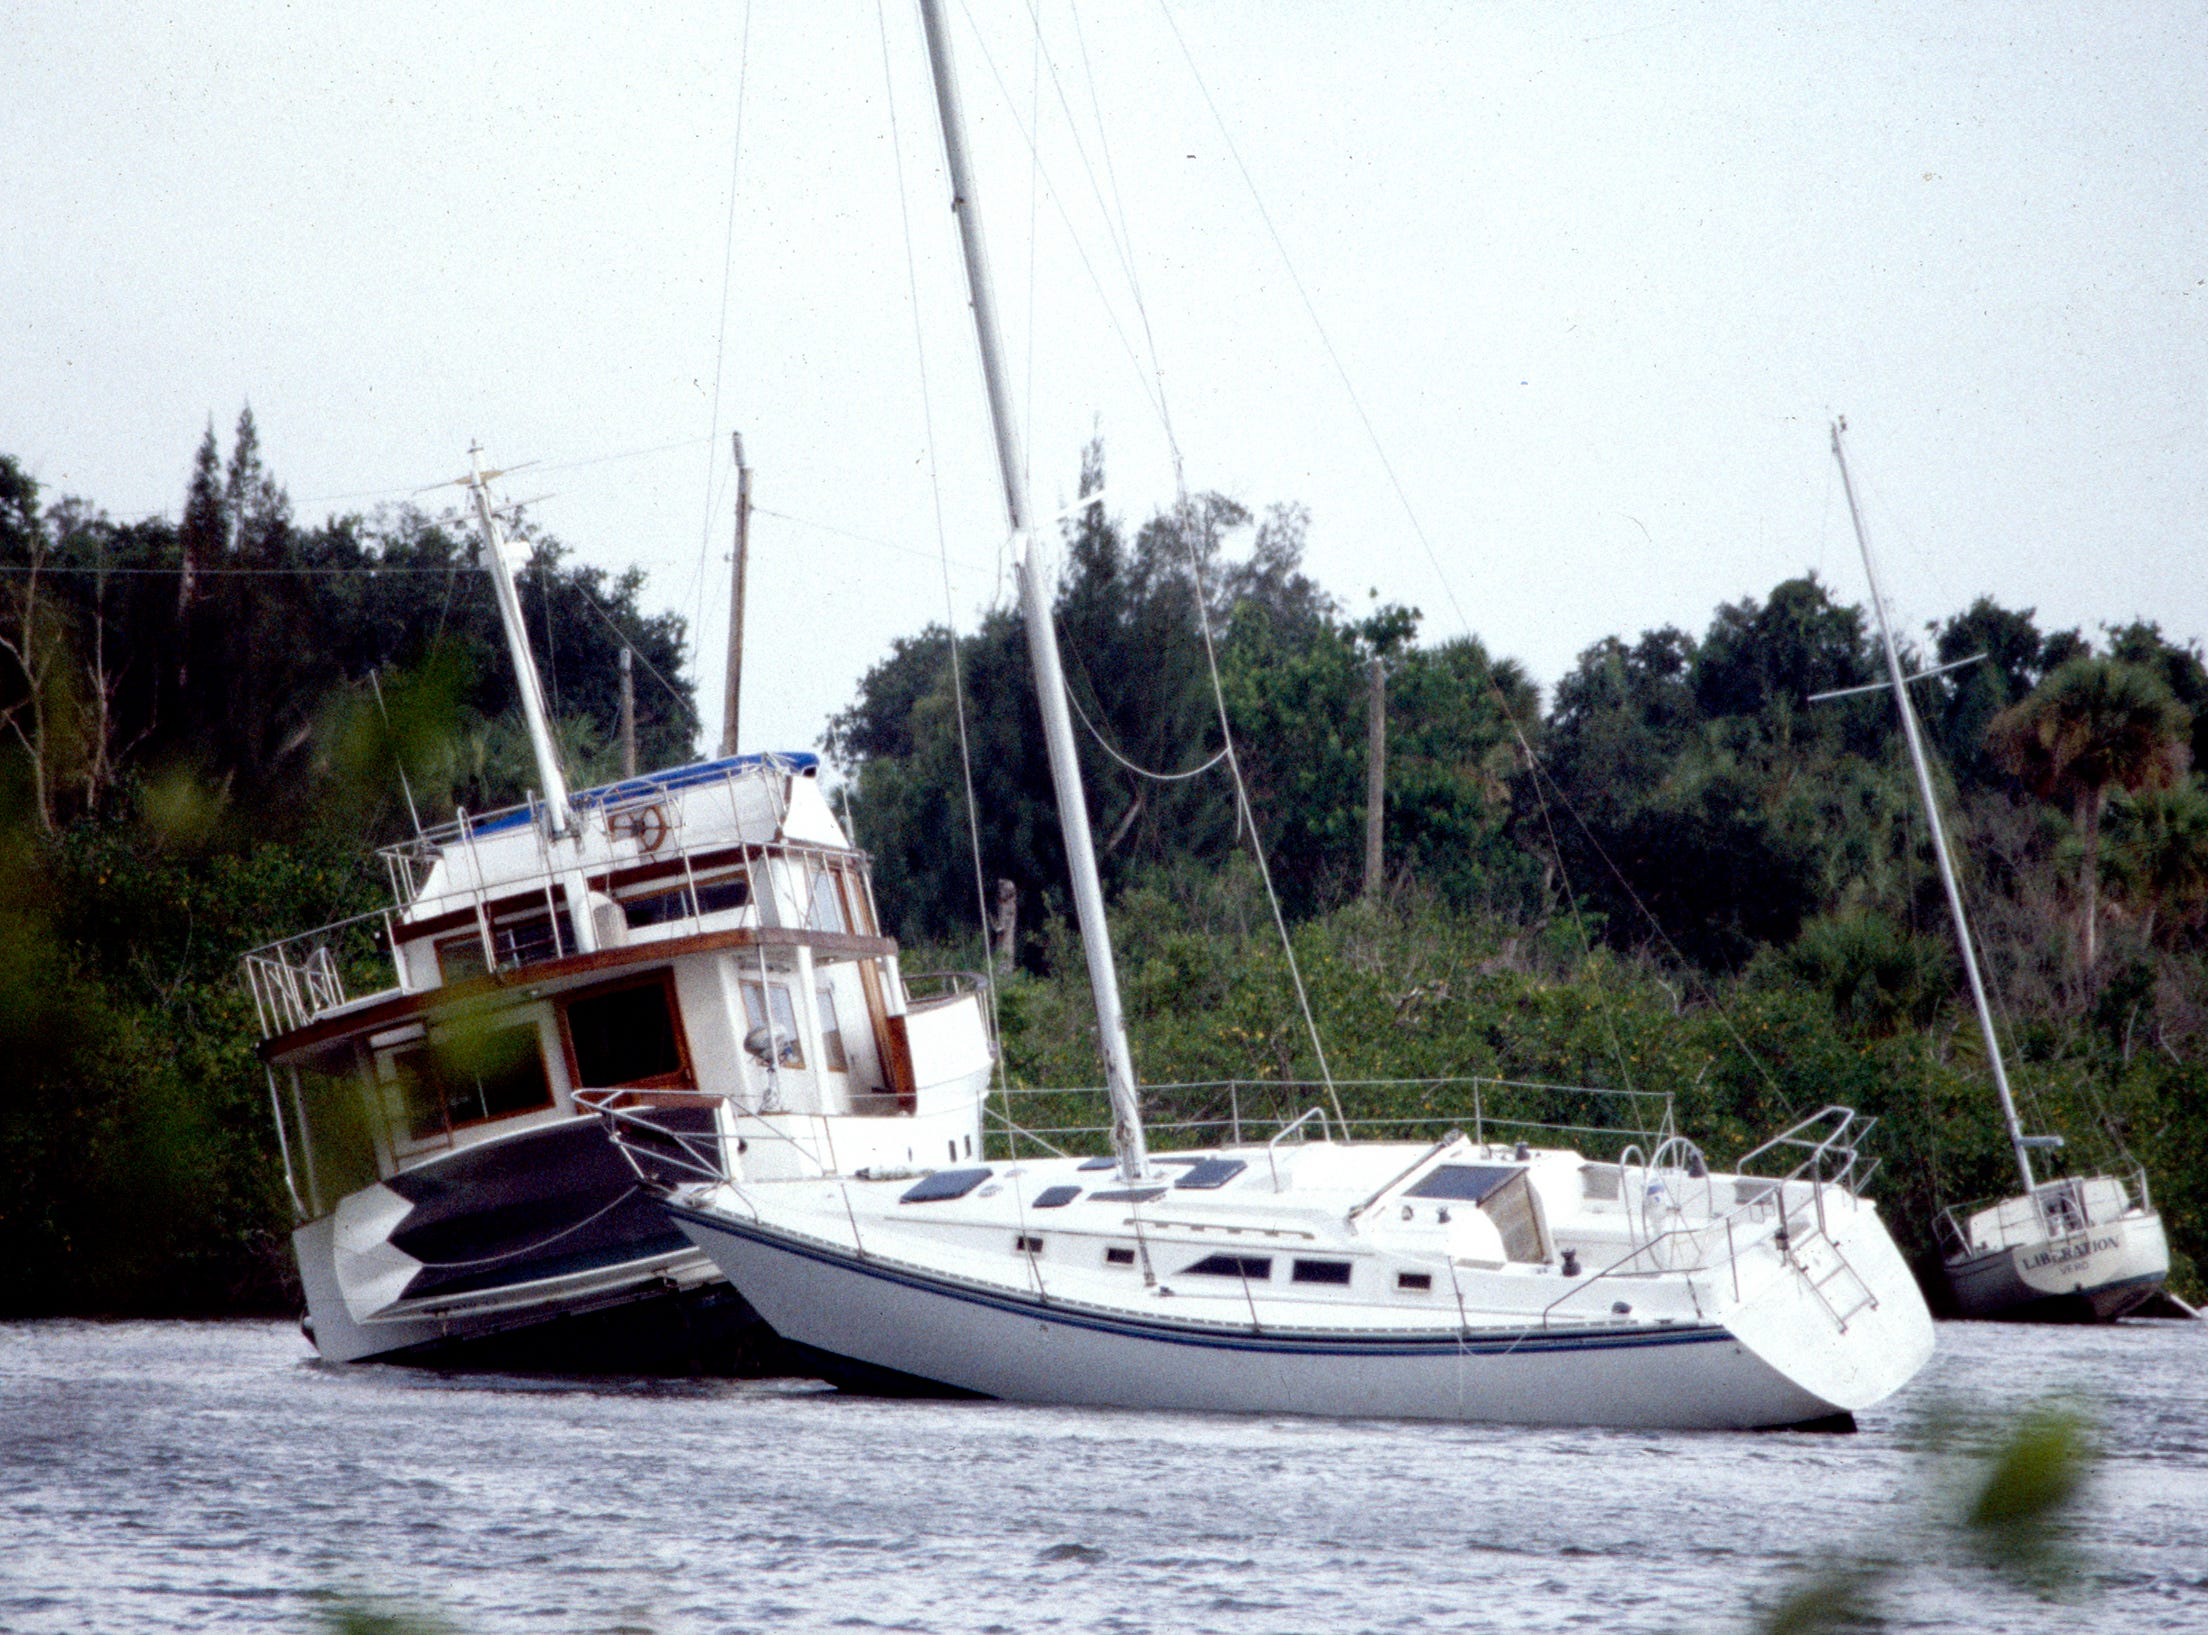 August 2, 1995 - Three boats along Jungle Trail were pulled from their moorings and were run aground during Hurricane Erin. They were sitting haphazardly in the Indian River Lagoon just north of Jones Pier. Erin's eye came ashore near Vero Beach, and was responsible for 11 deaths.